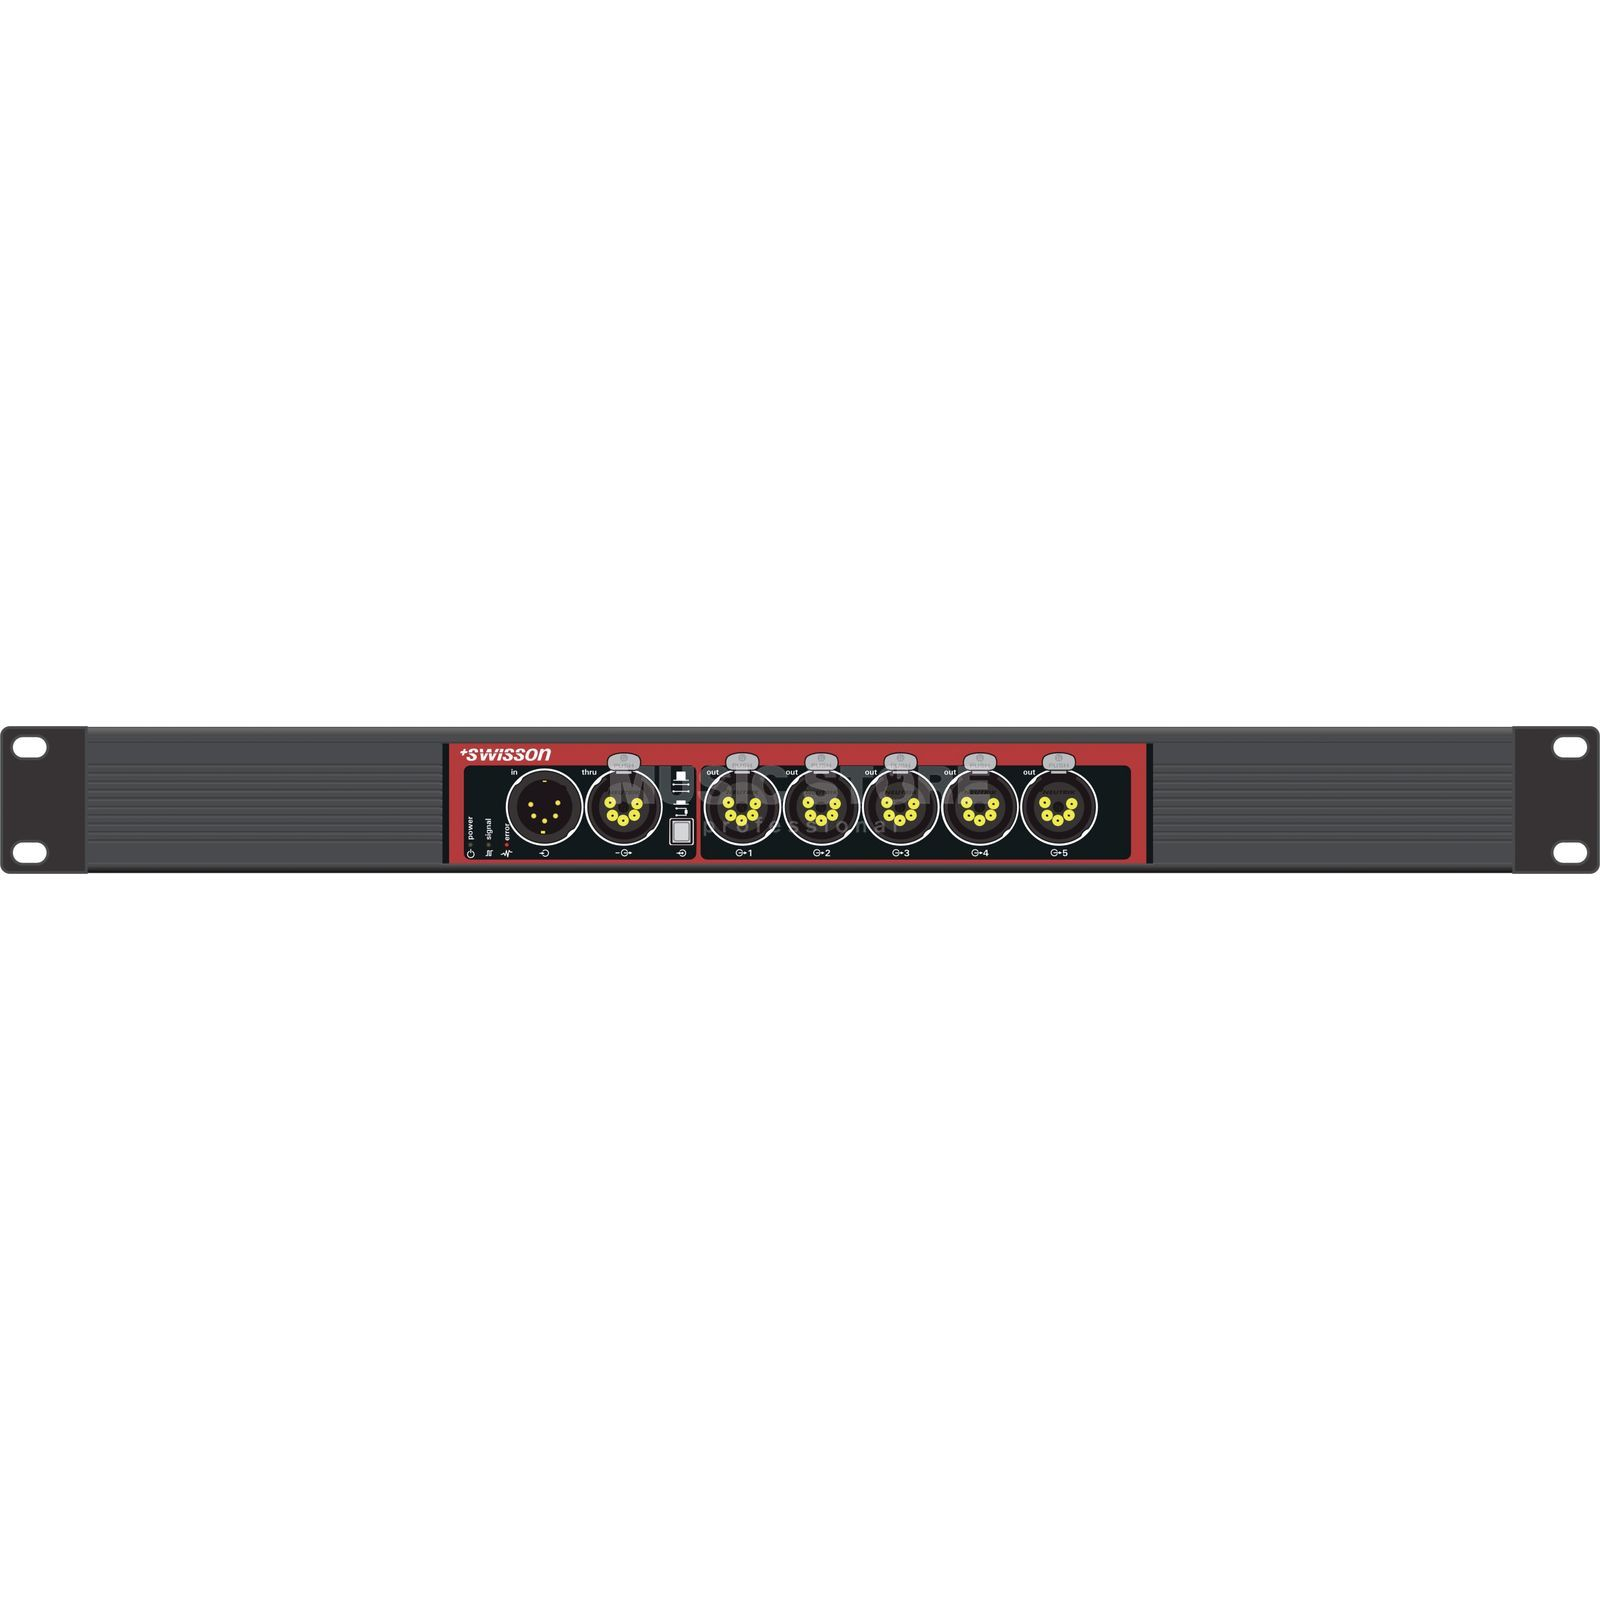 "Swisson X-SP-5R DMX Splitter Single 19"", 5pol in/5thru/5x 5pol out Produktbild"